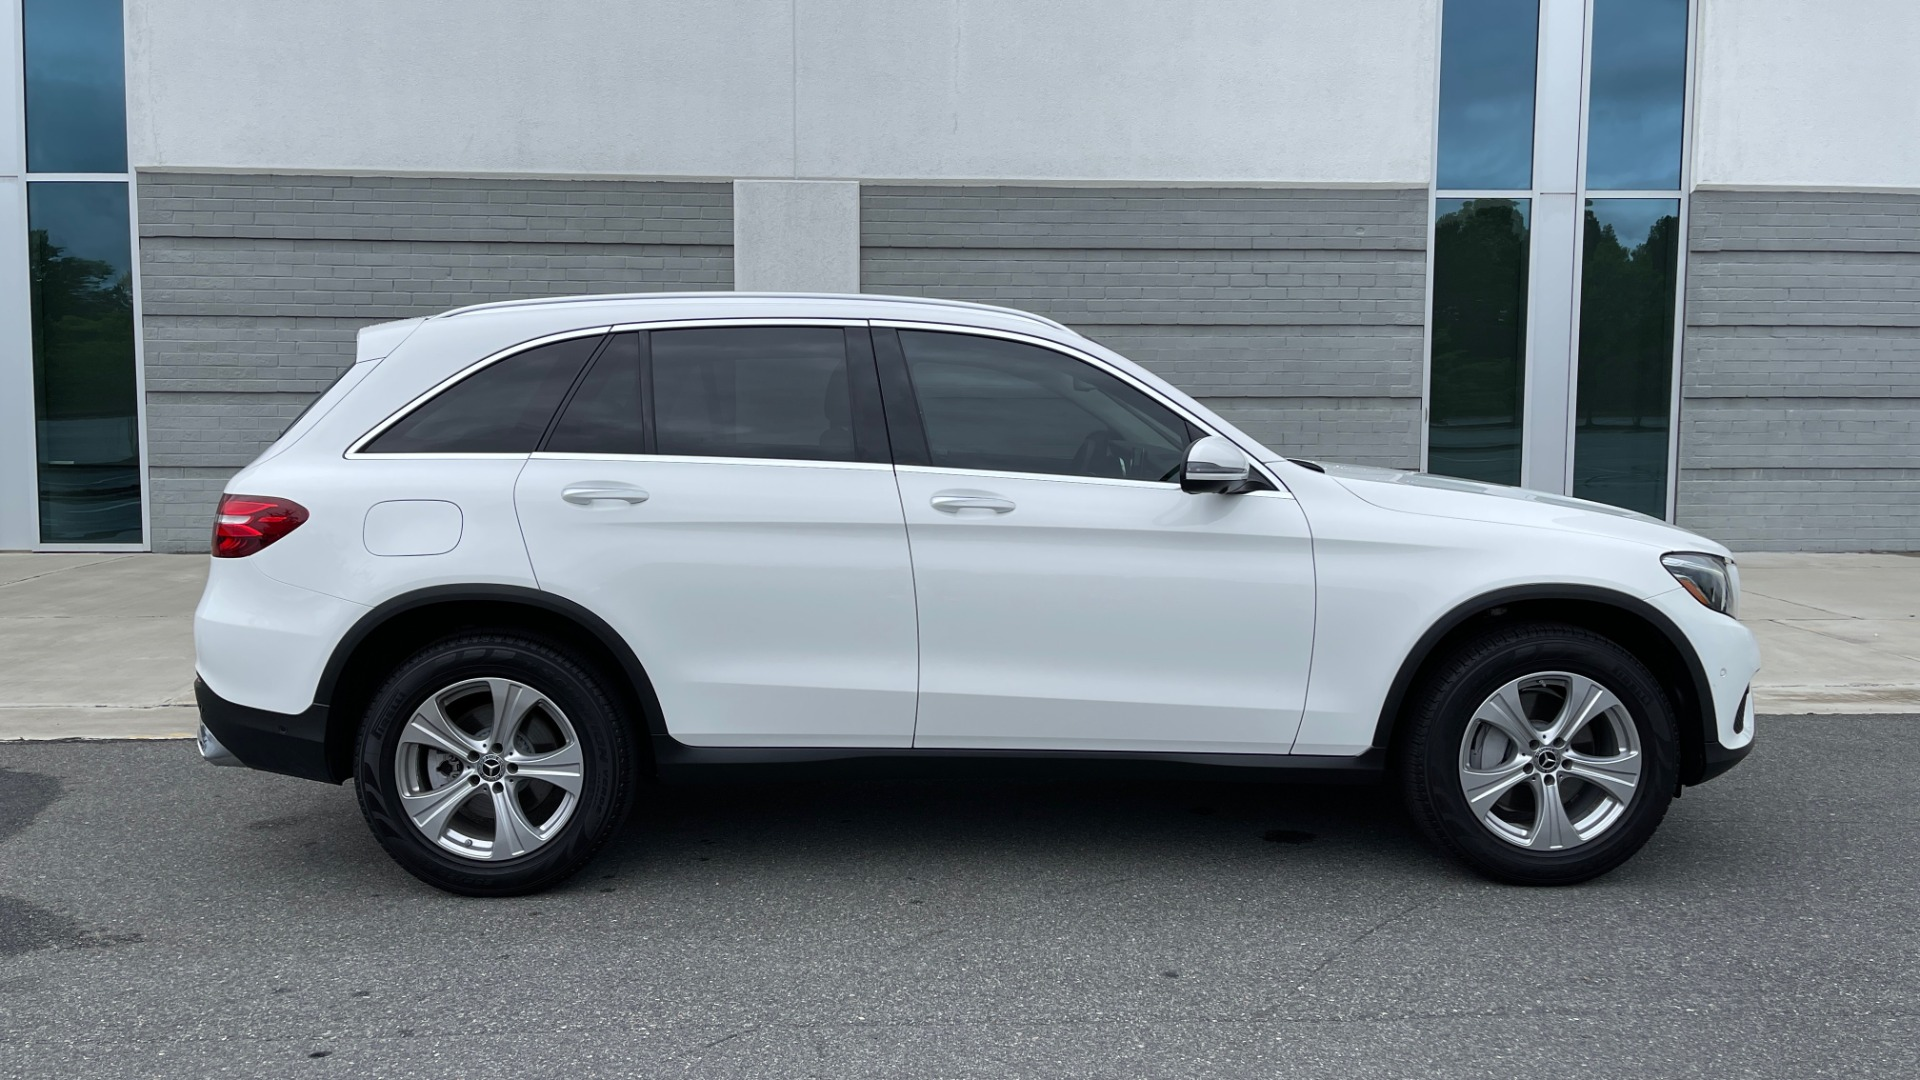 Used 2018 Mercedes-Benz GLC 300 PREMIUM / PANO-ROOF / HTD STS / PARK ASST / REARVIEW for sale $34,613 at Formula Imports in Charlotte NC 28227 7